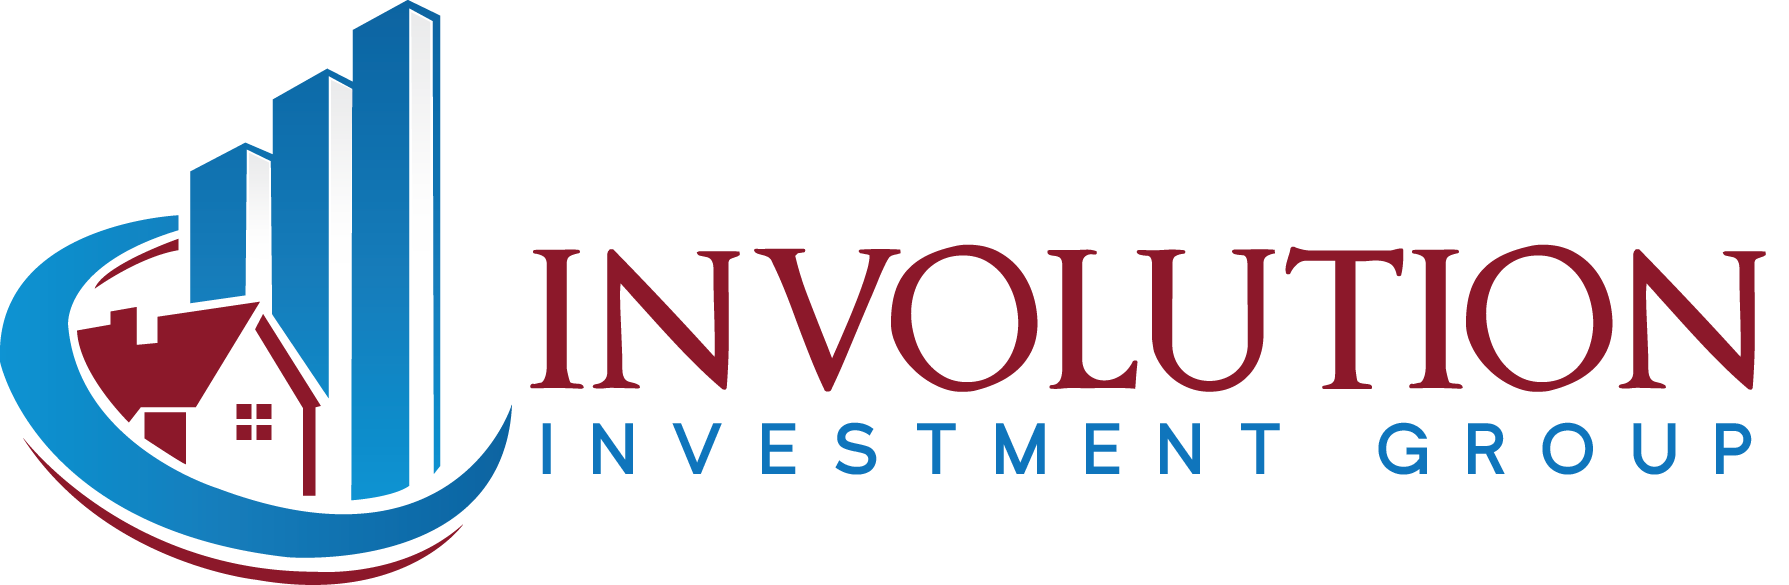 Involution Investment Group logo